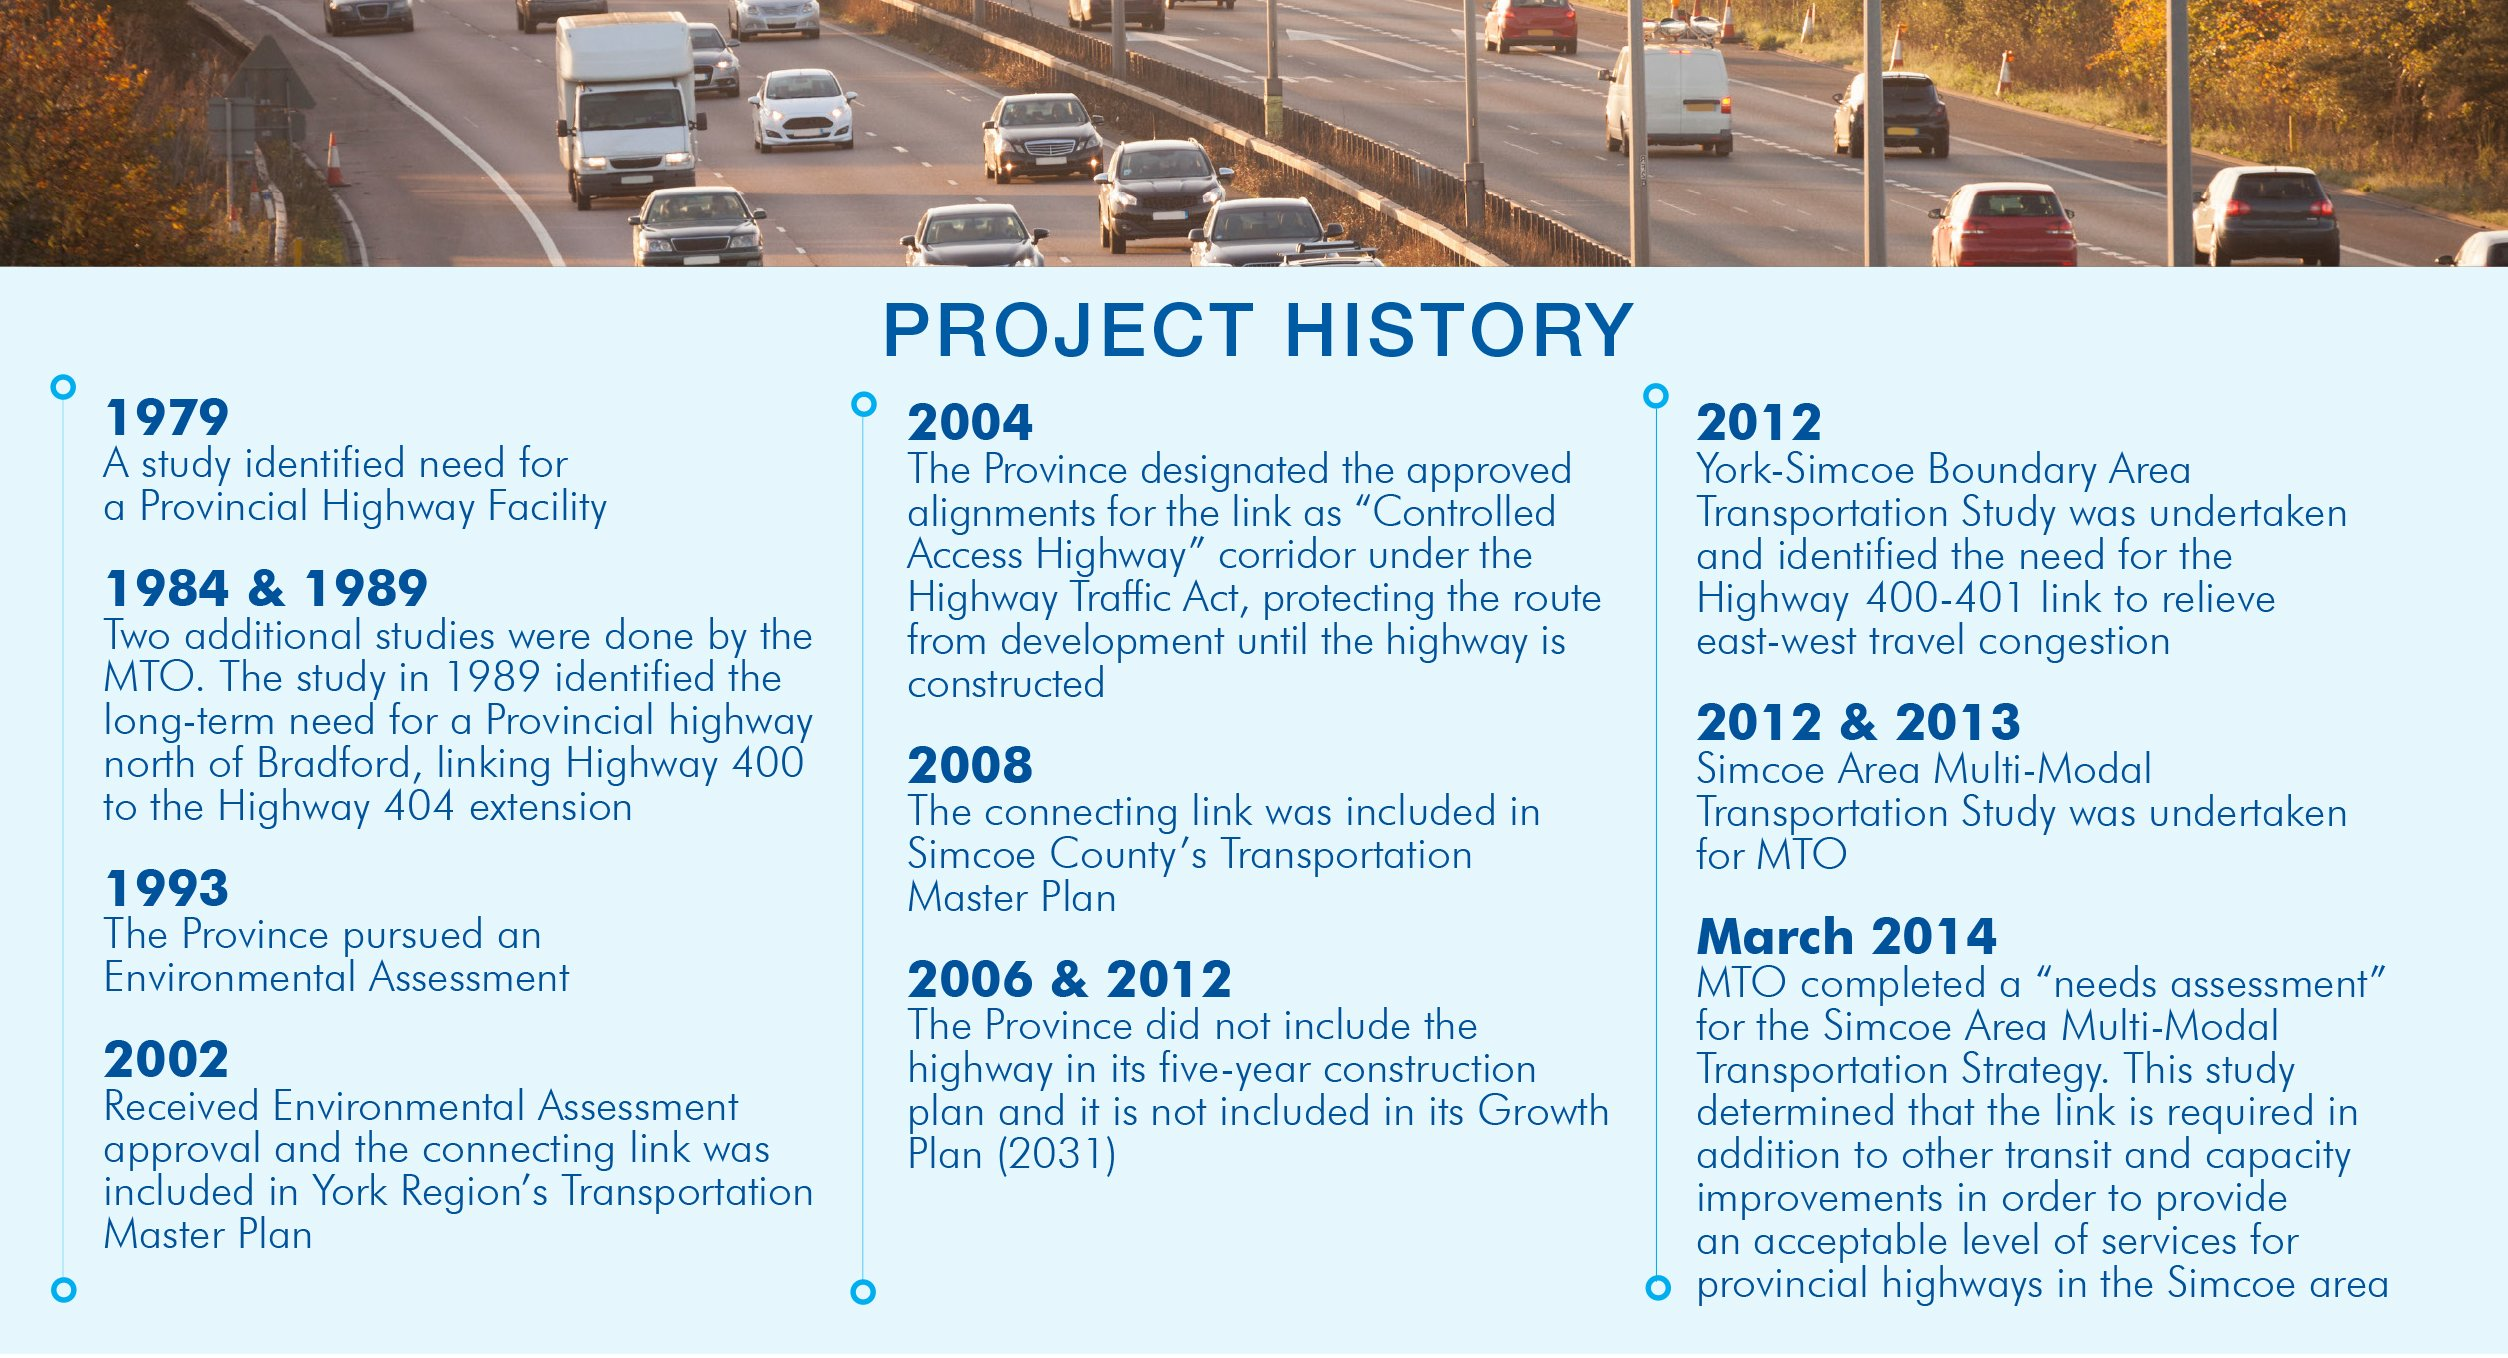 Project History Timeline